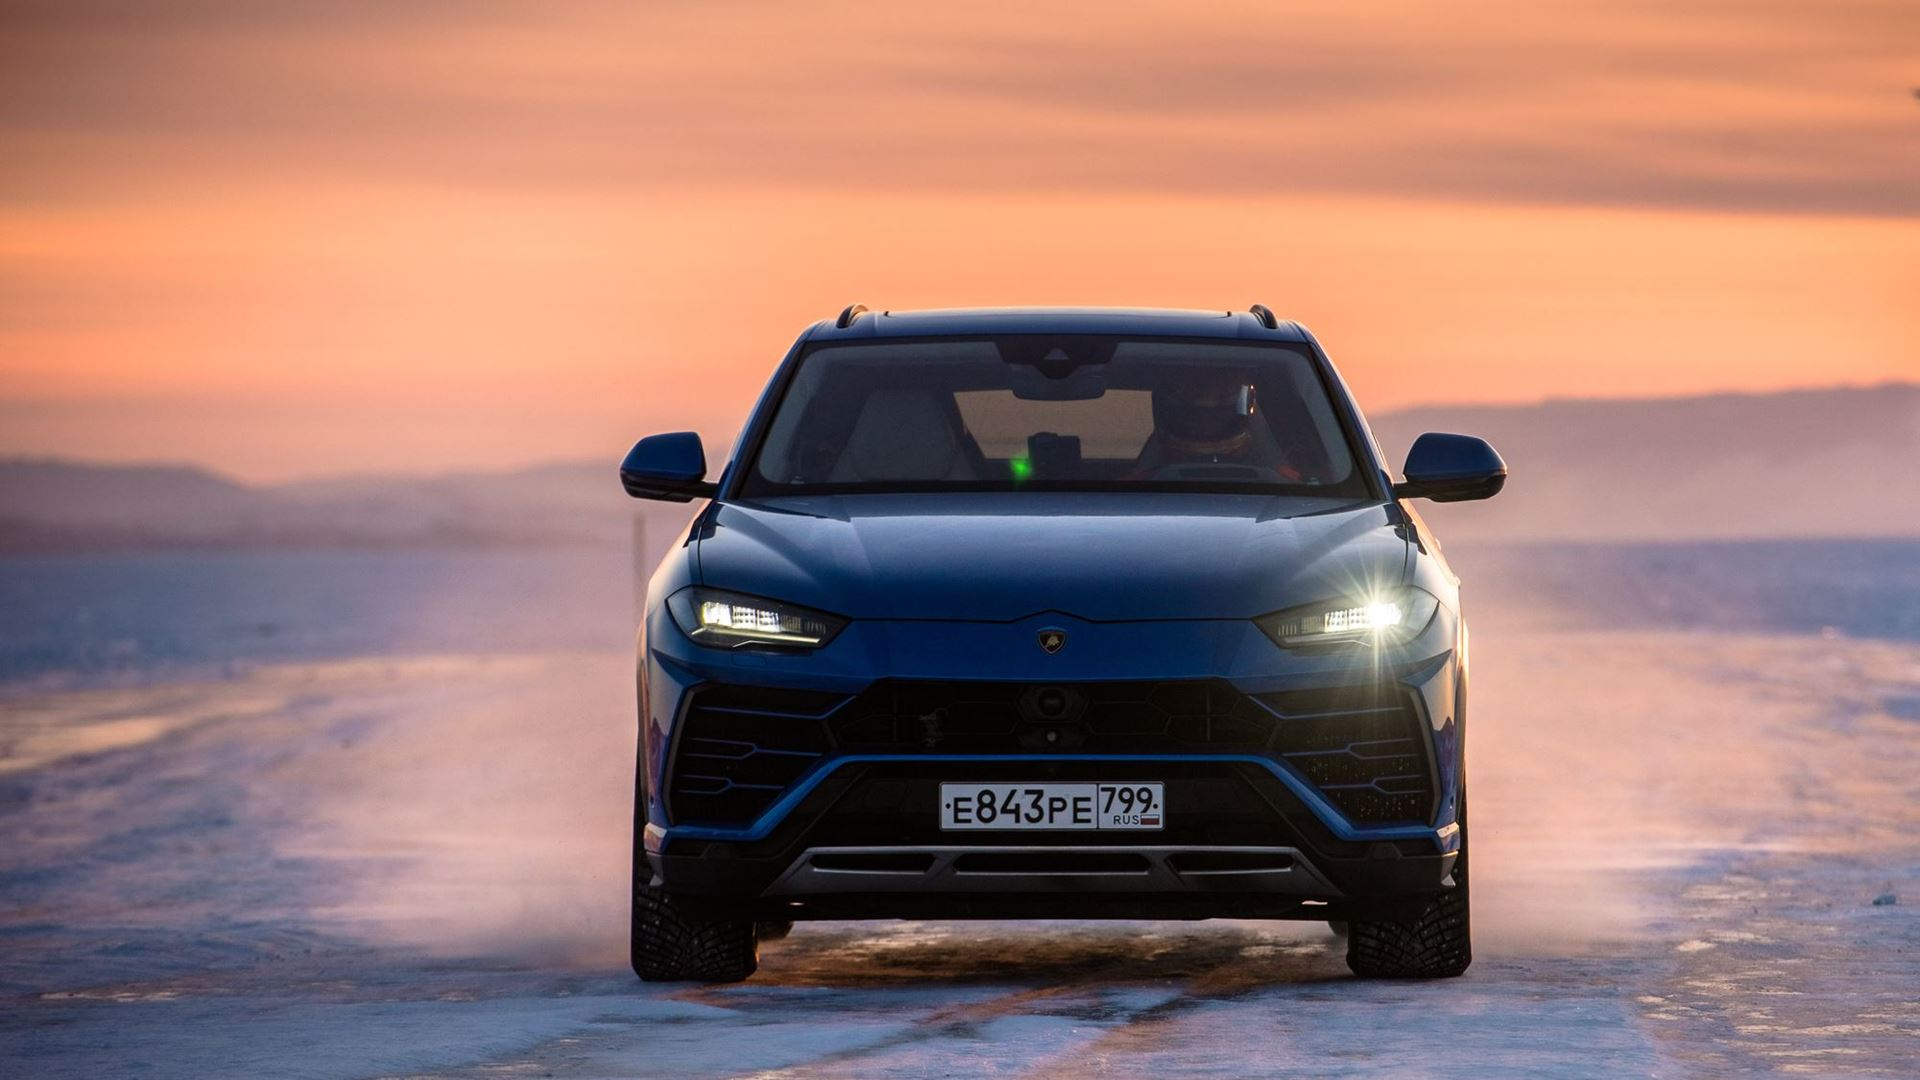 Lamborghini Urus sets high-speed record on the ice of Lake Baikal - Image 4